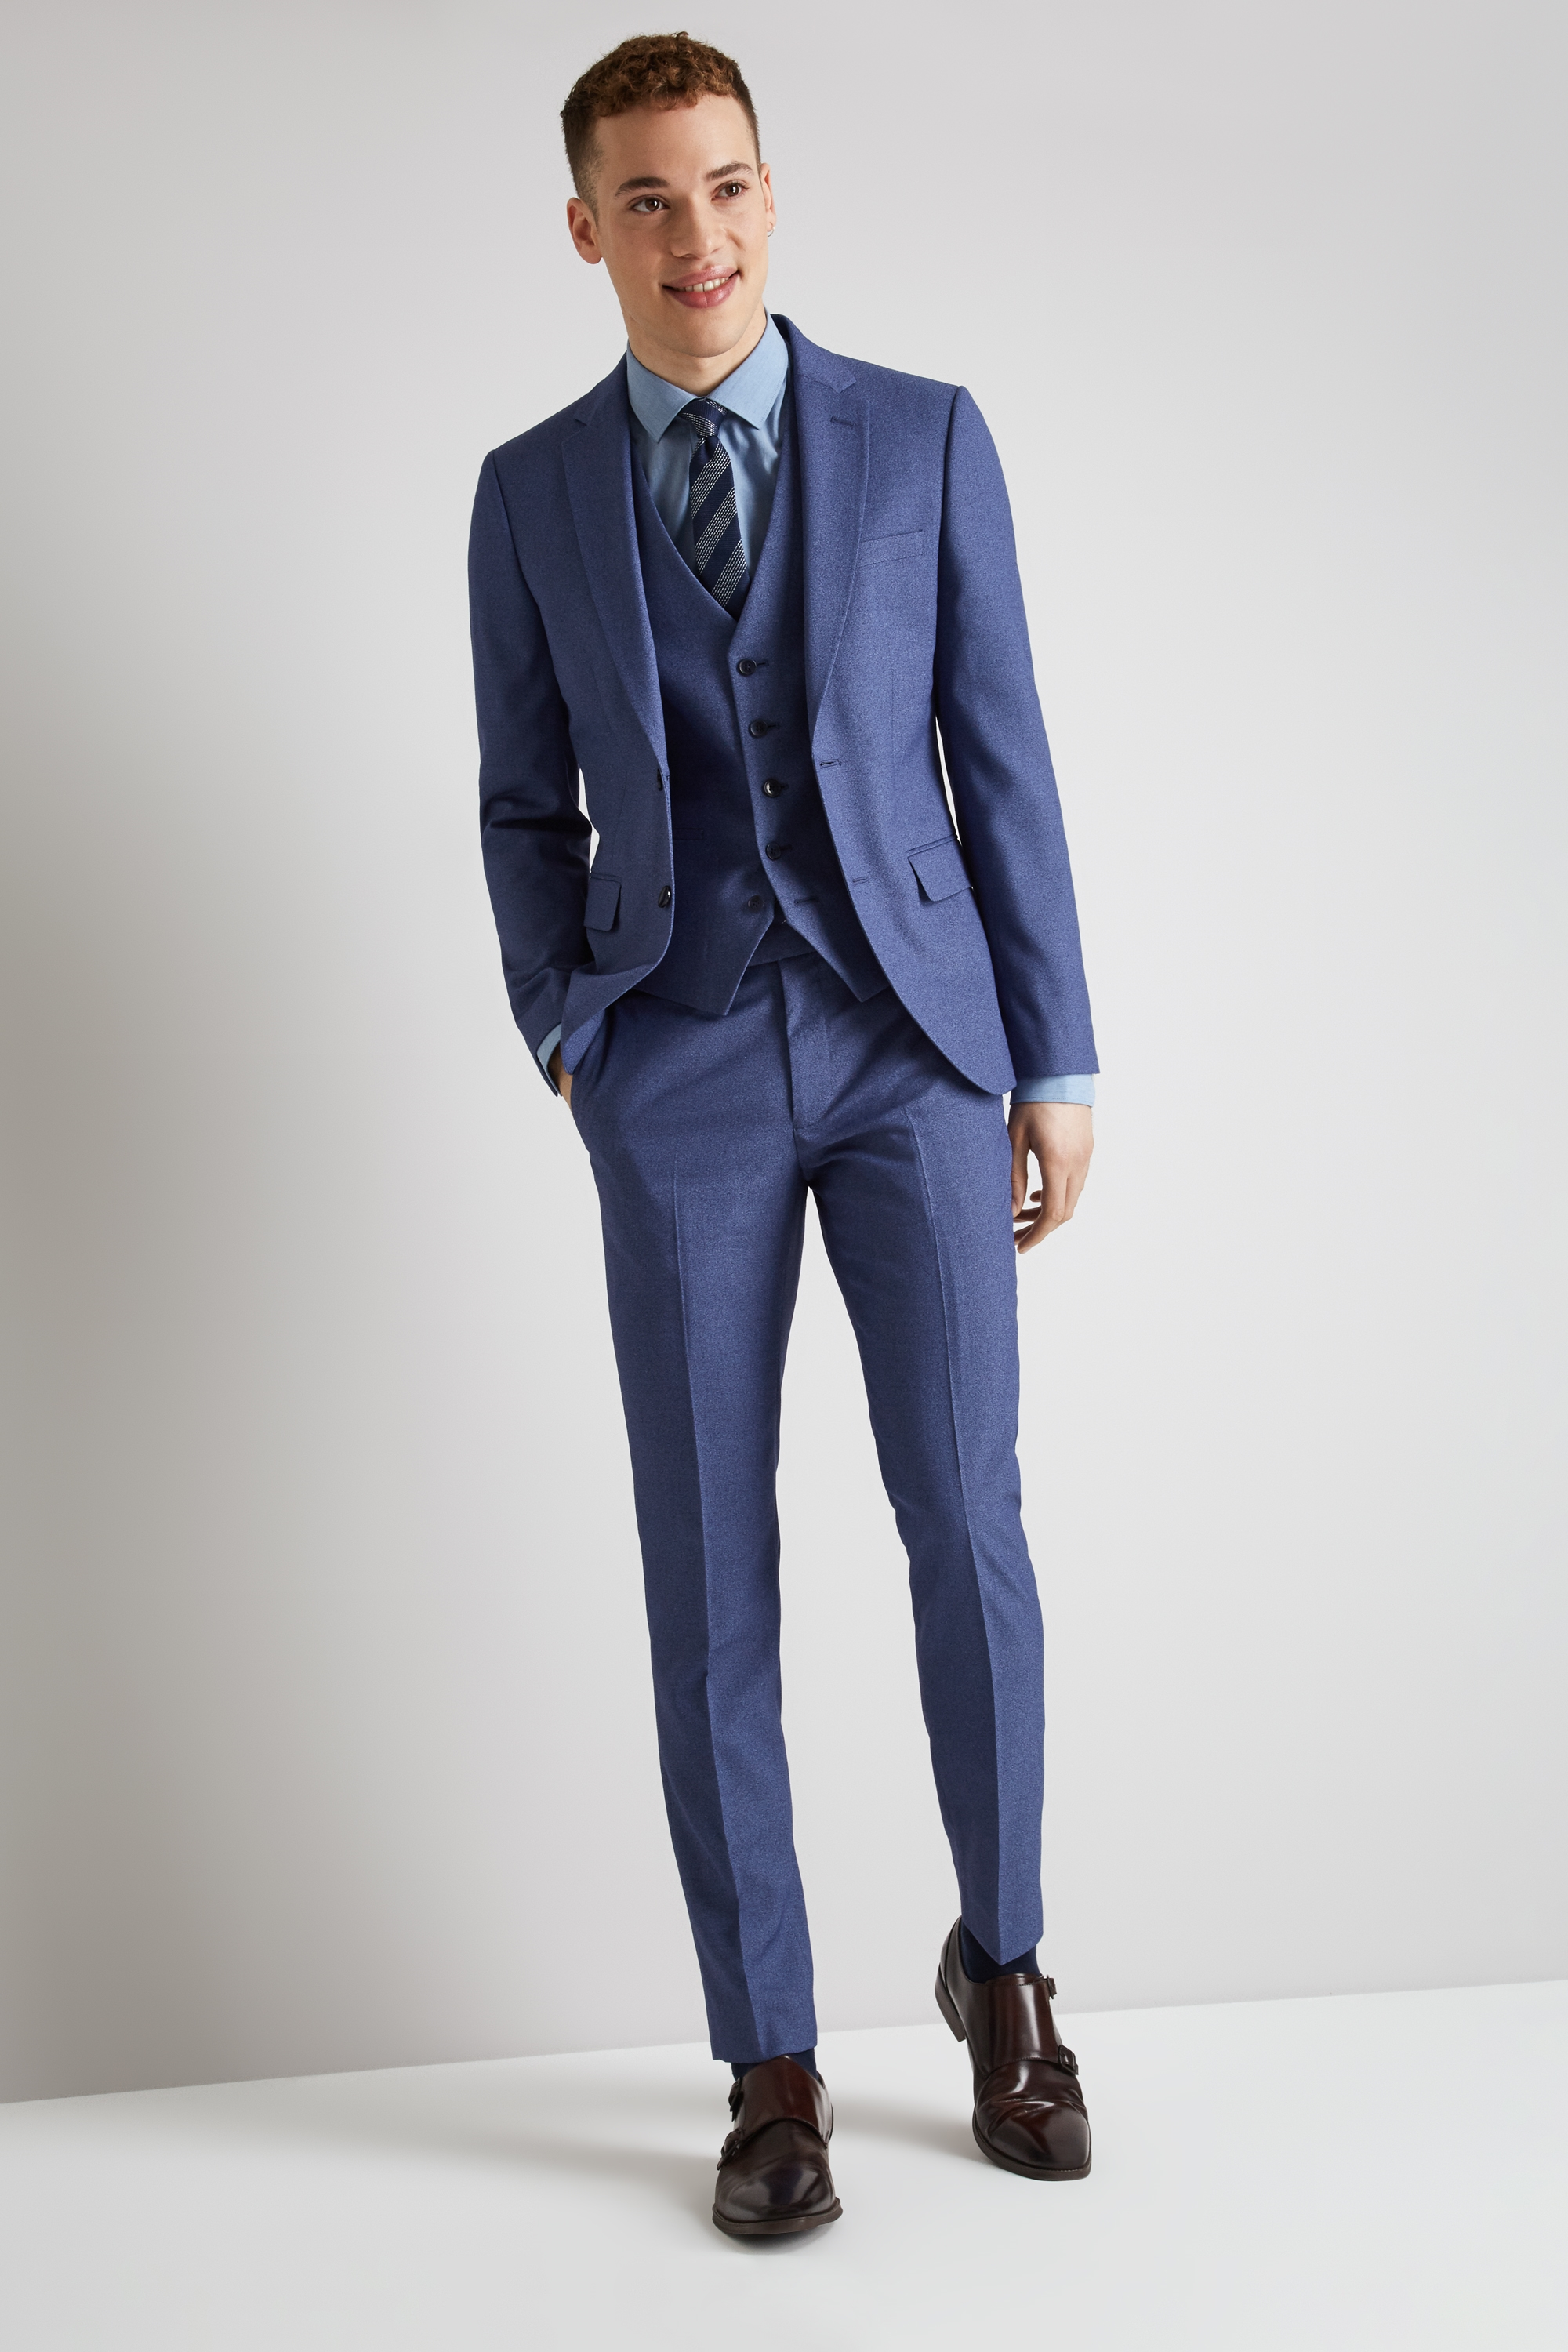 Skinny Suits – What's in a Name?